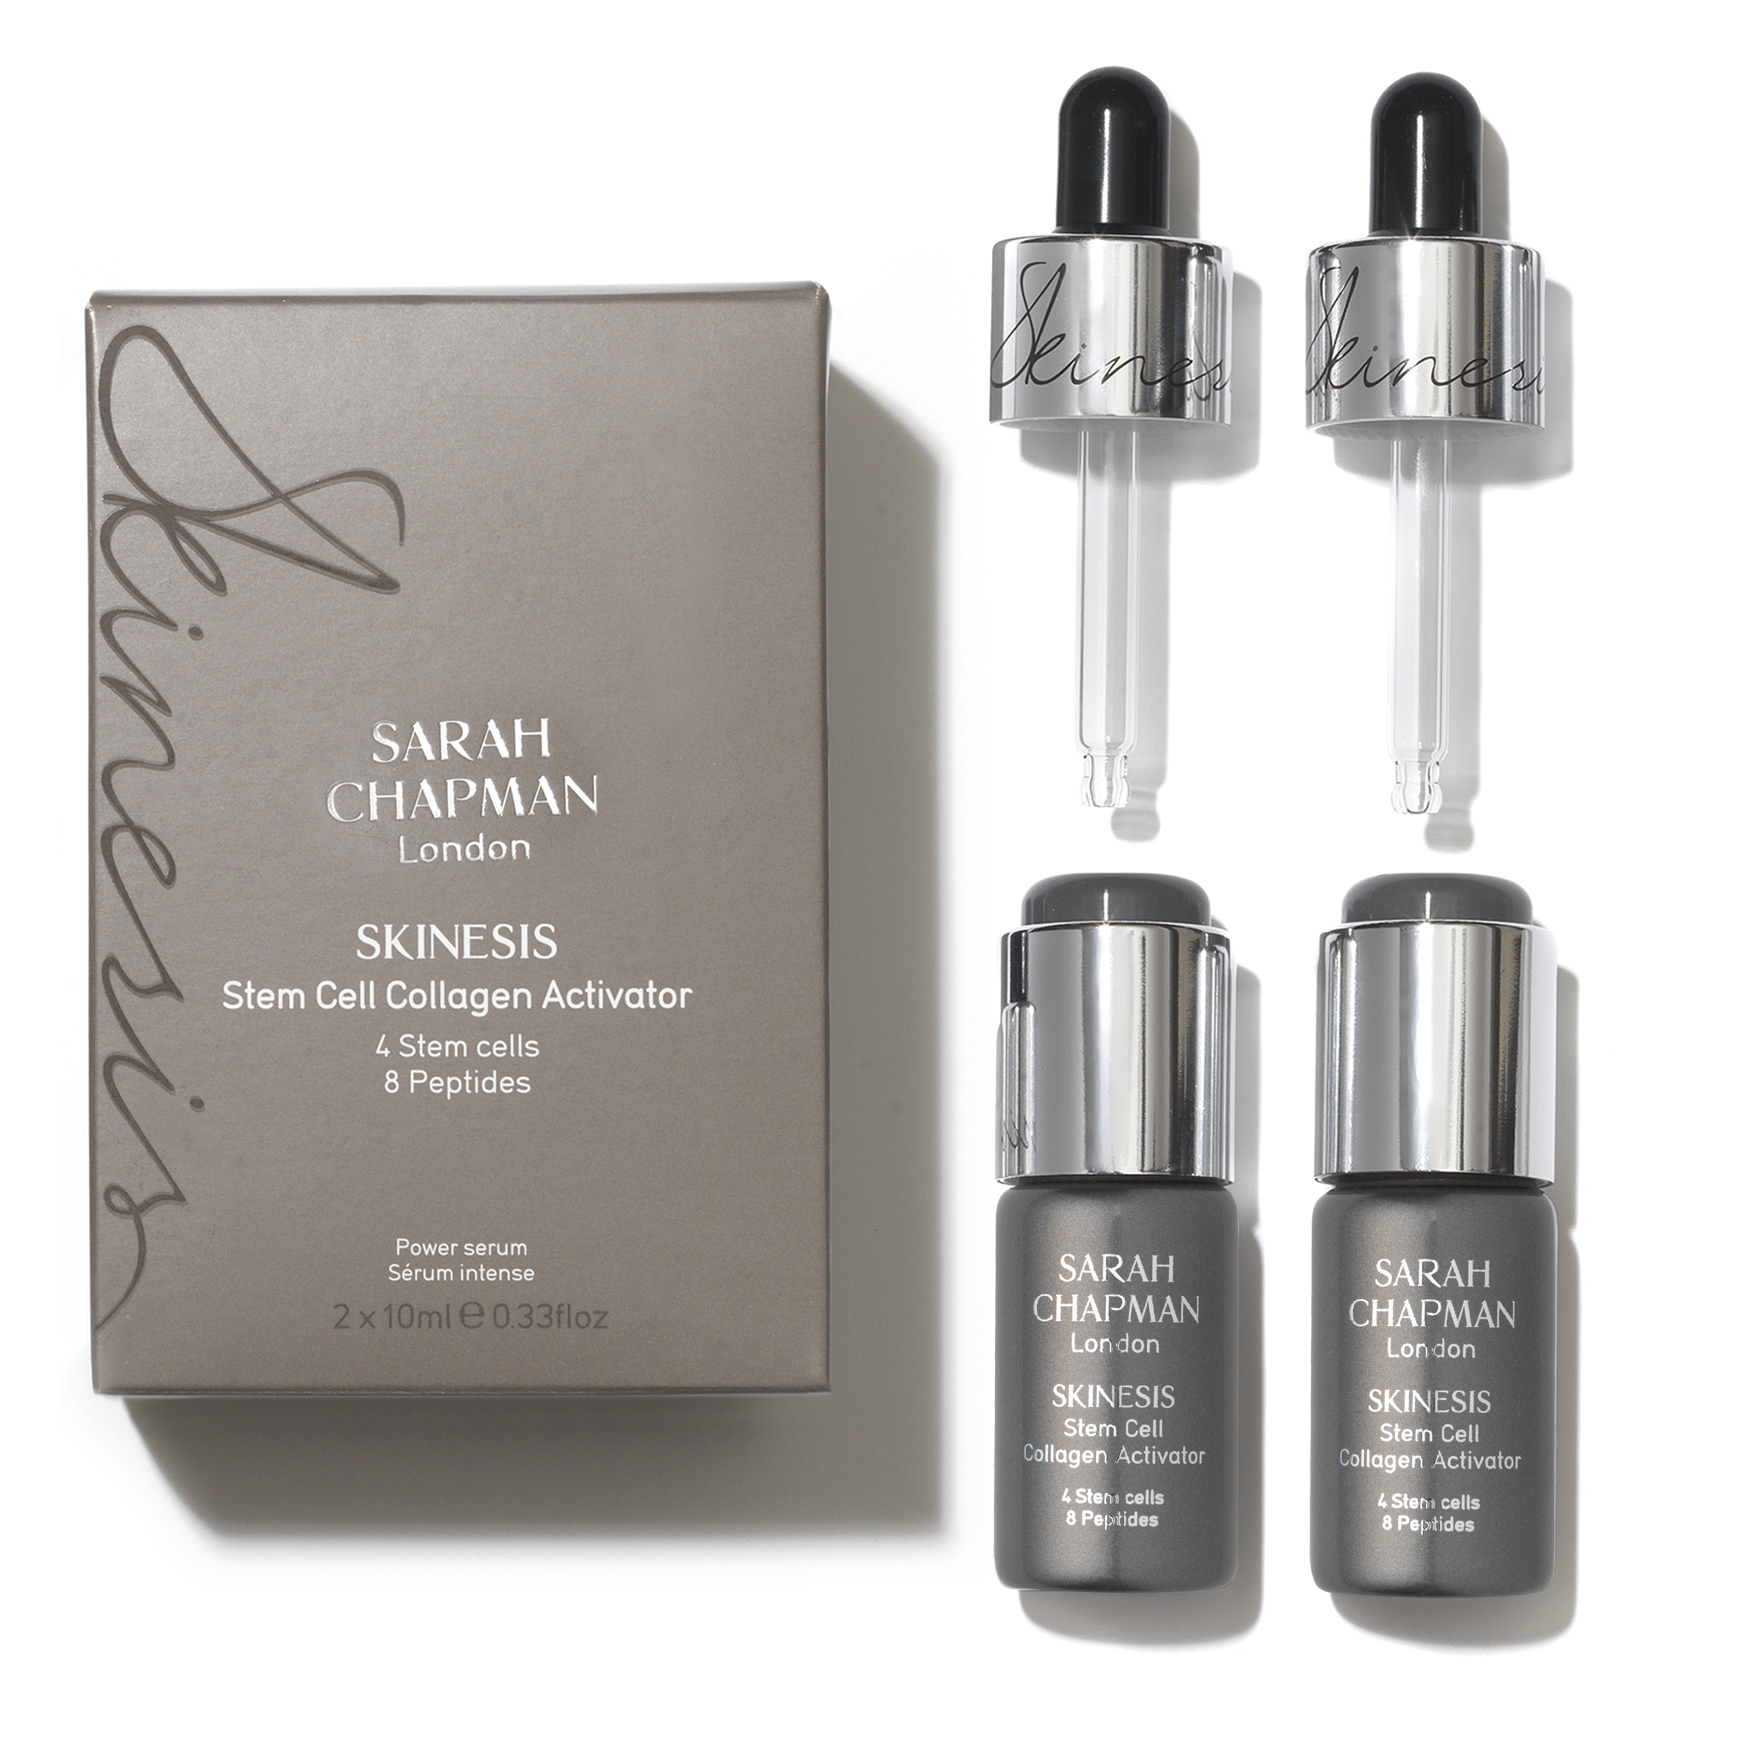 Sarah Chapman Stem Cell Collagen Activator Duo